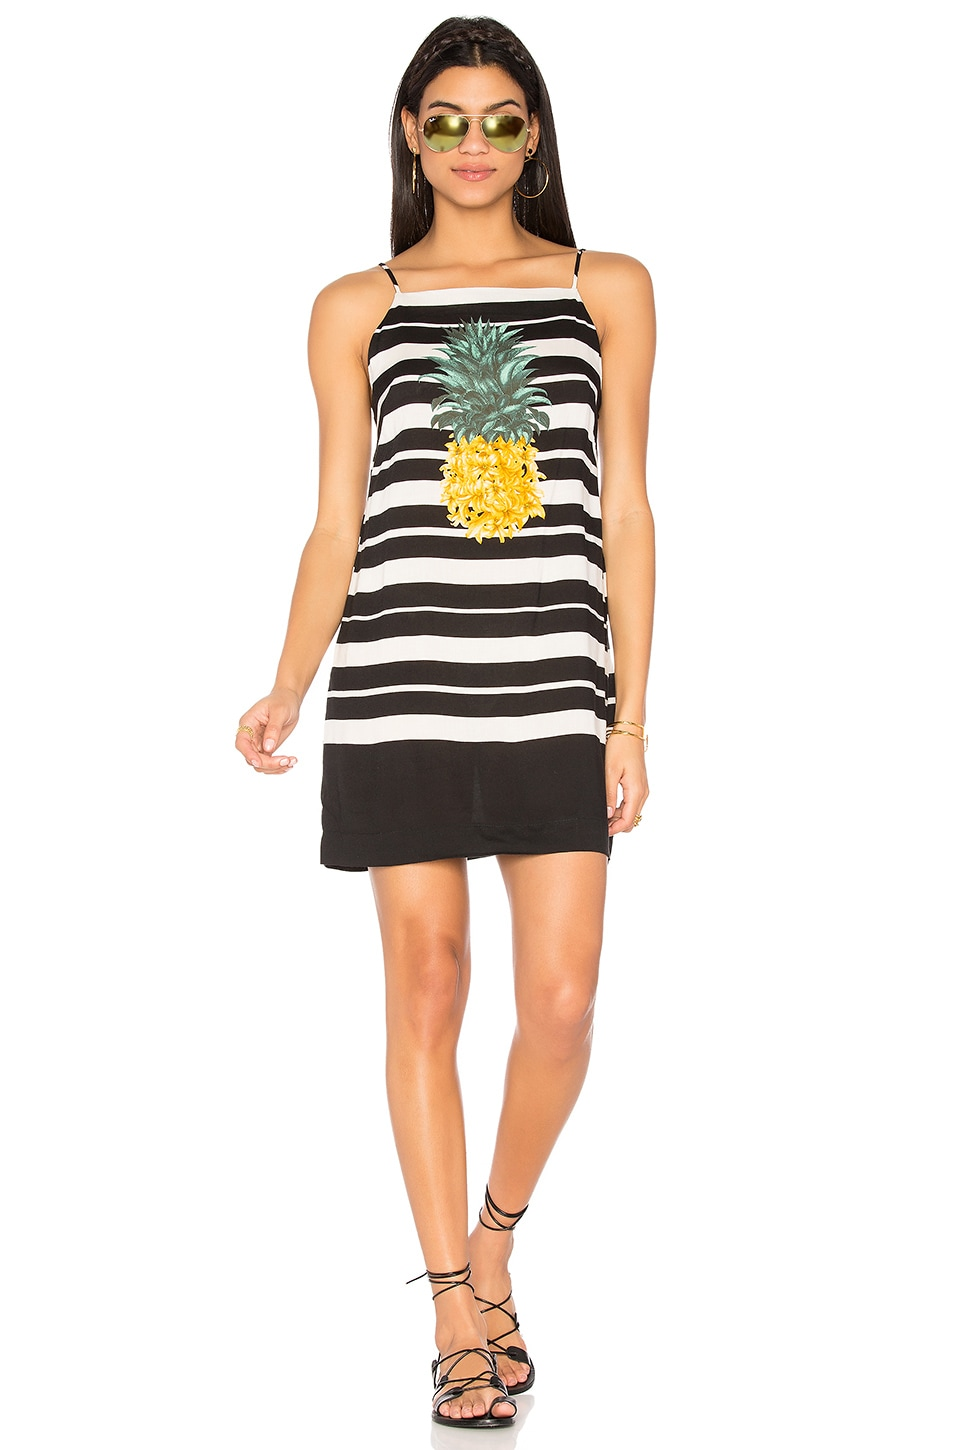 Striped Pineapple Dress